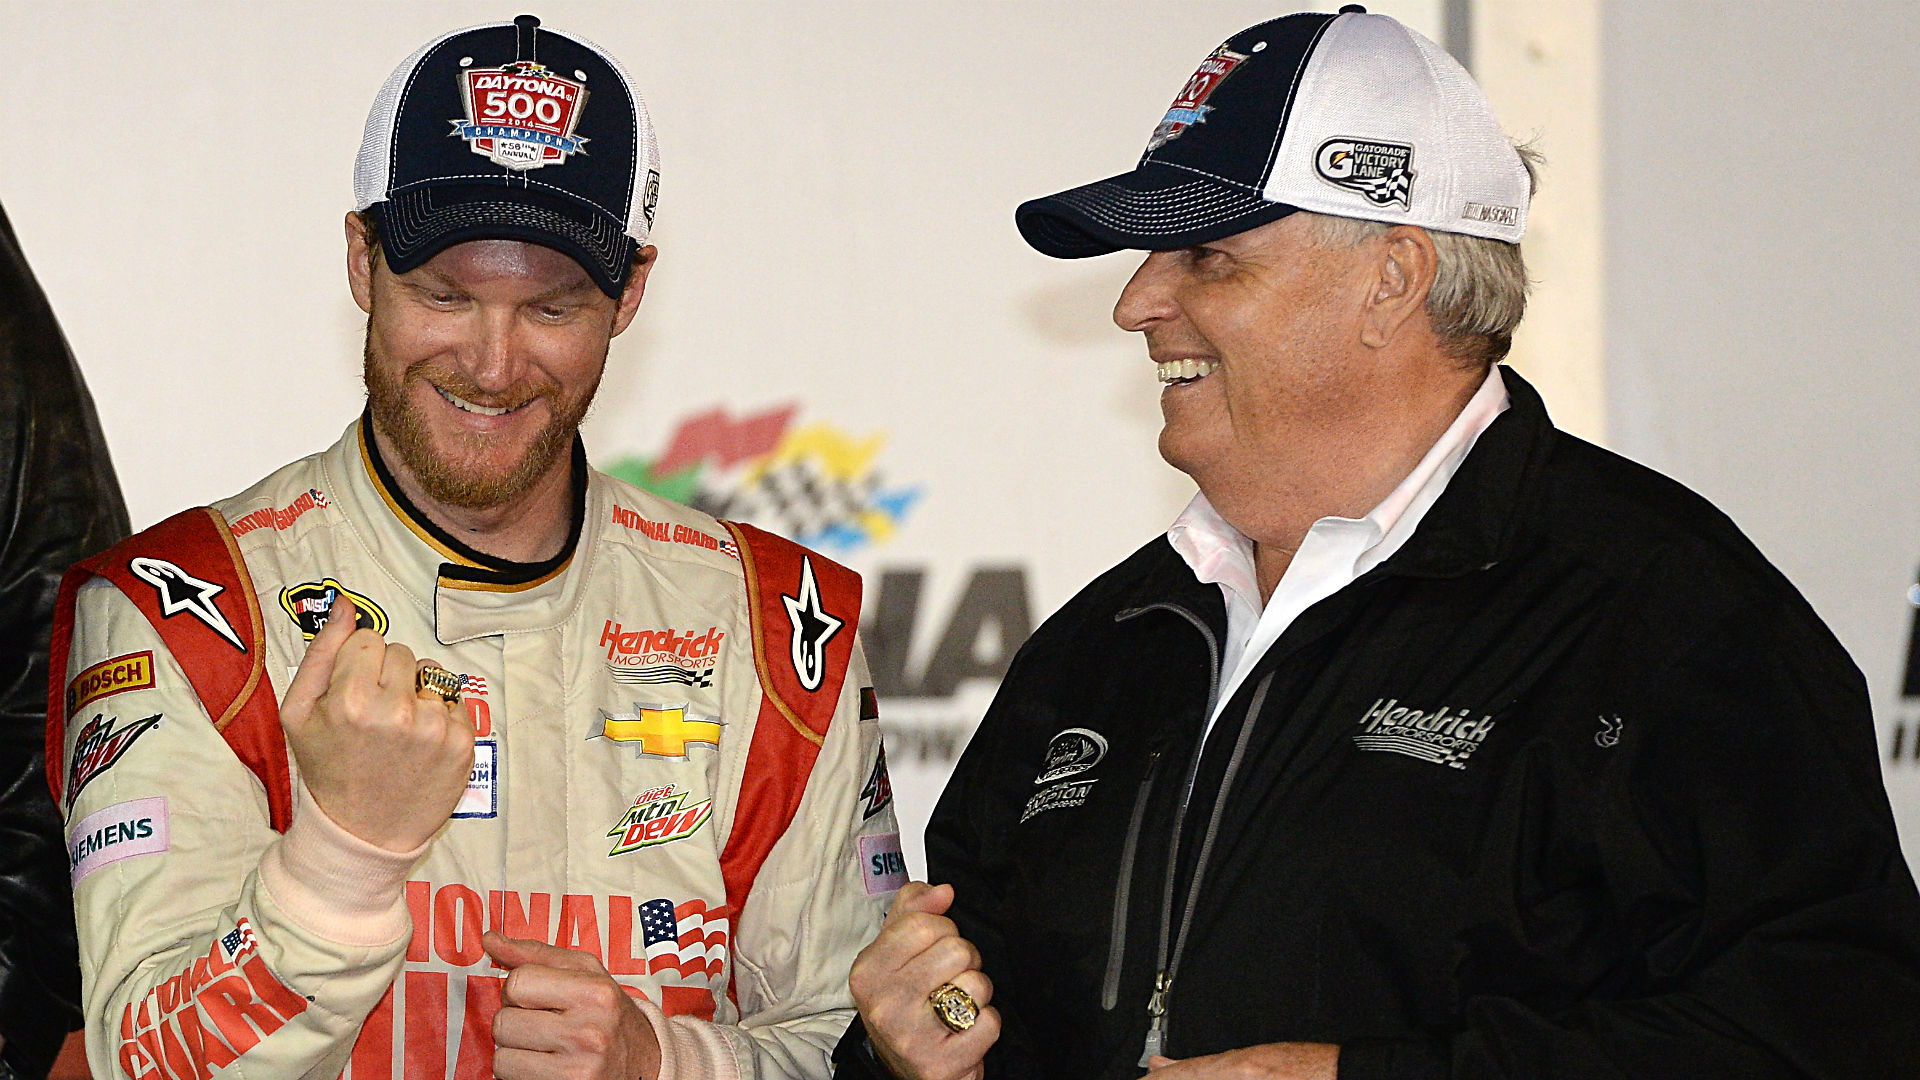 Dale Earnhardt Jr. and Rick Hendrick